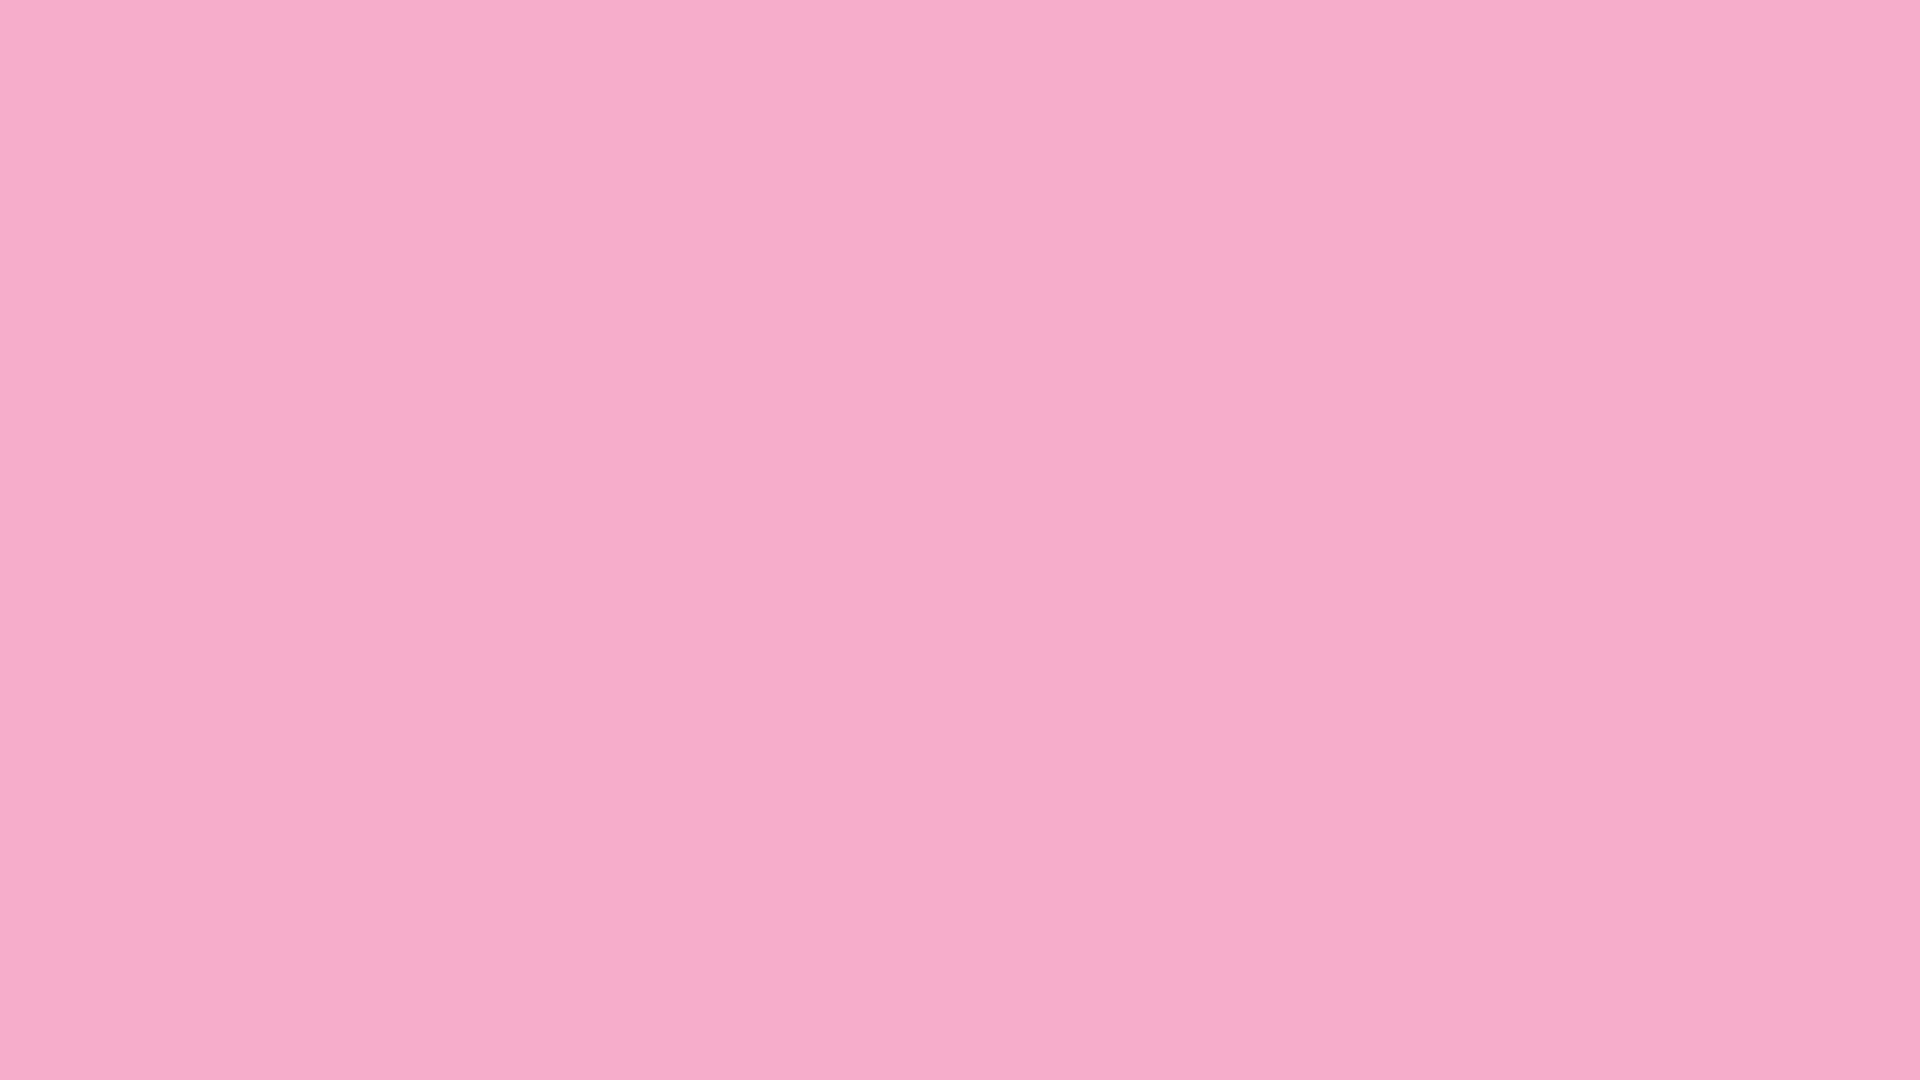 Pink Wallpapers Free Download Vector, PNG